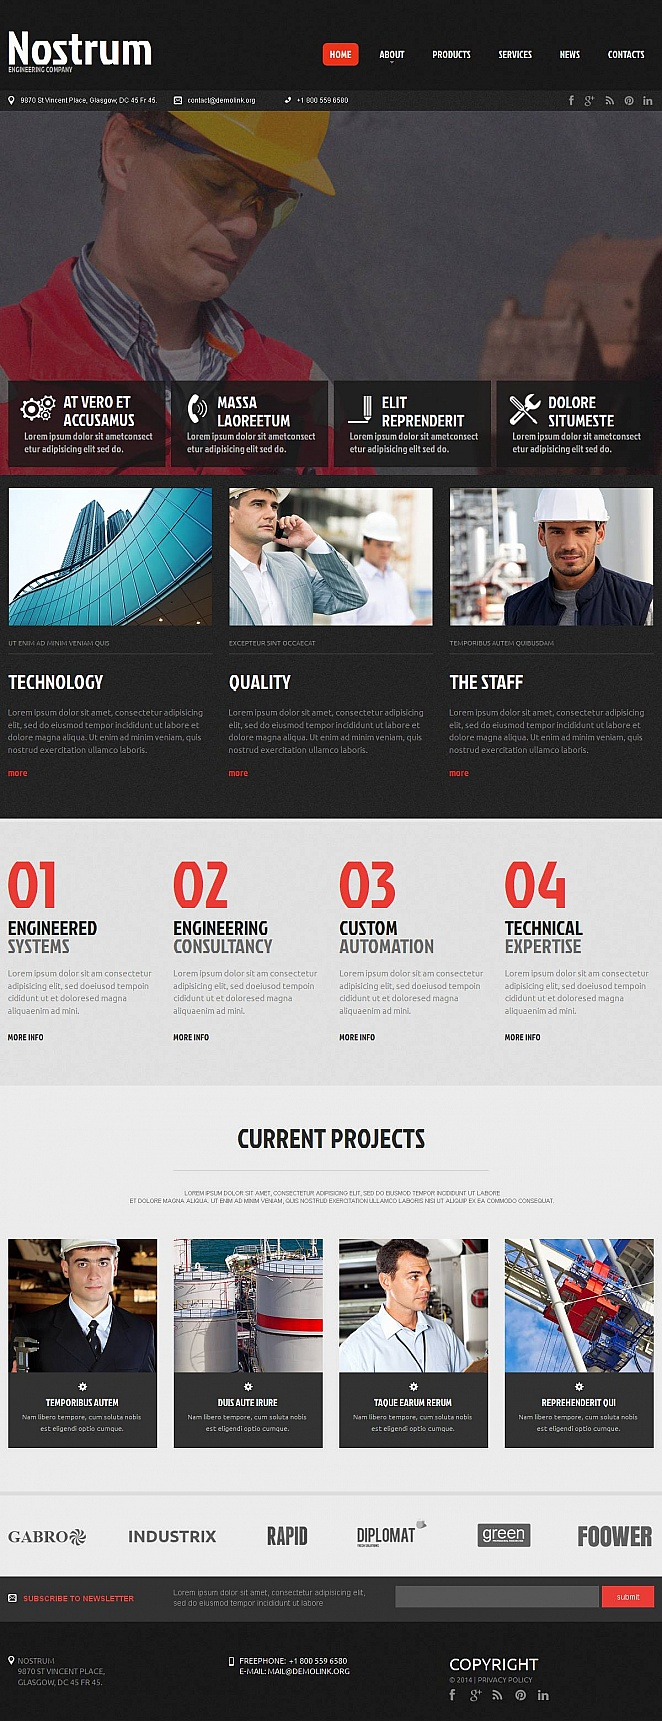 Black and White Website Template for Engineering Company - image